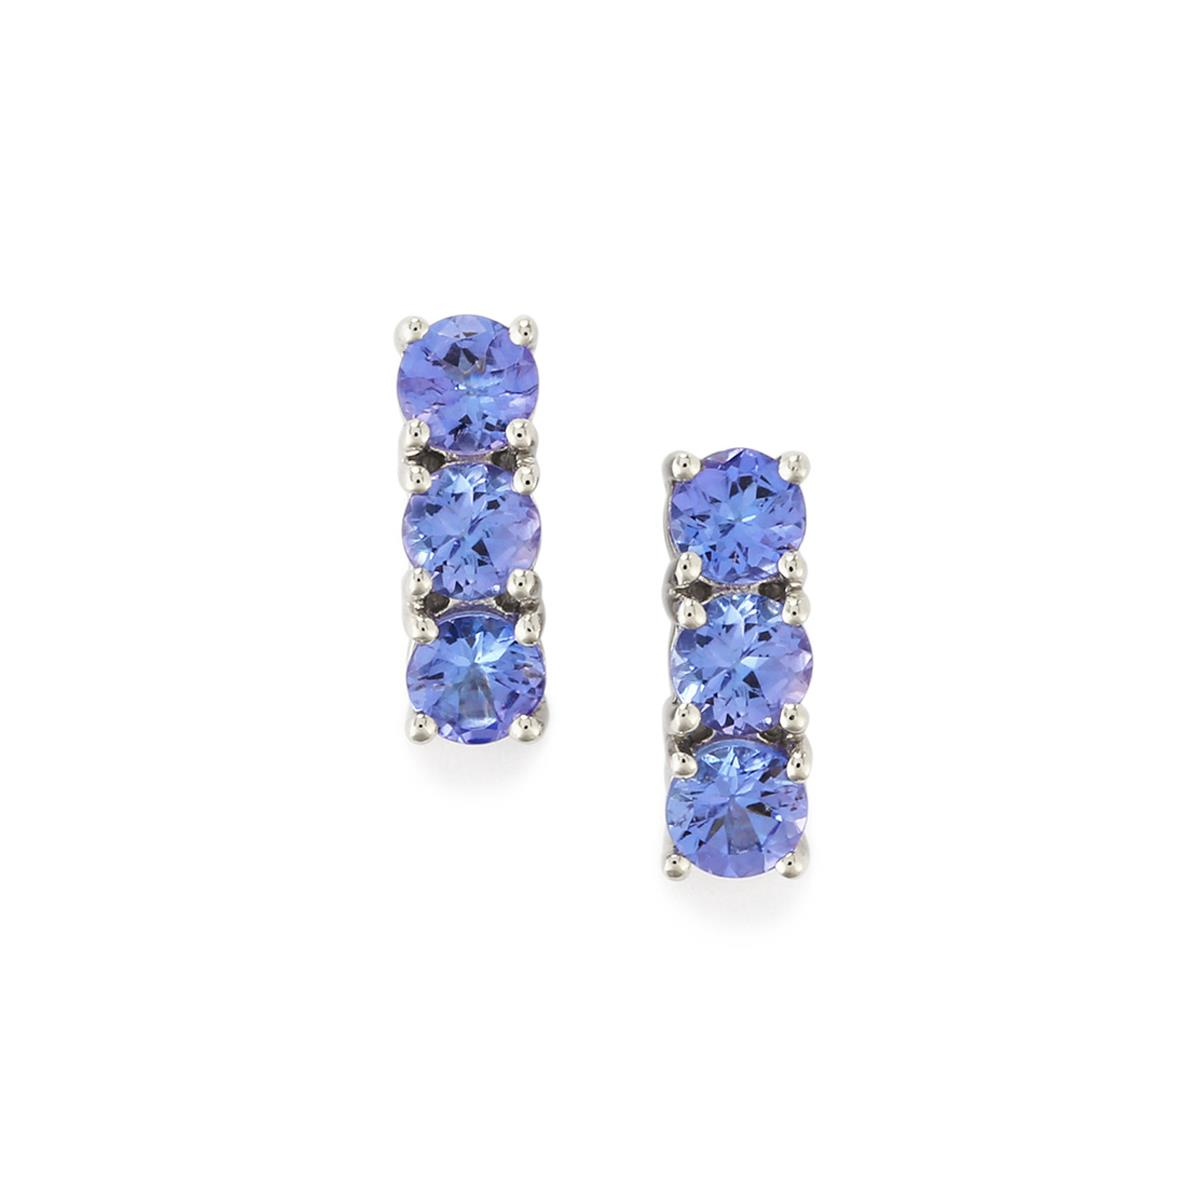 AA Tanzanite Earrings in Sterling Silver 1.73cts